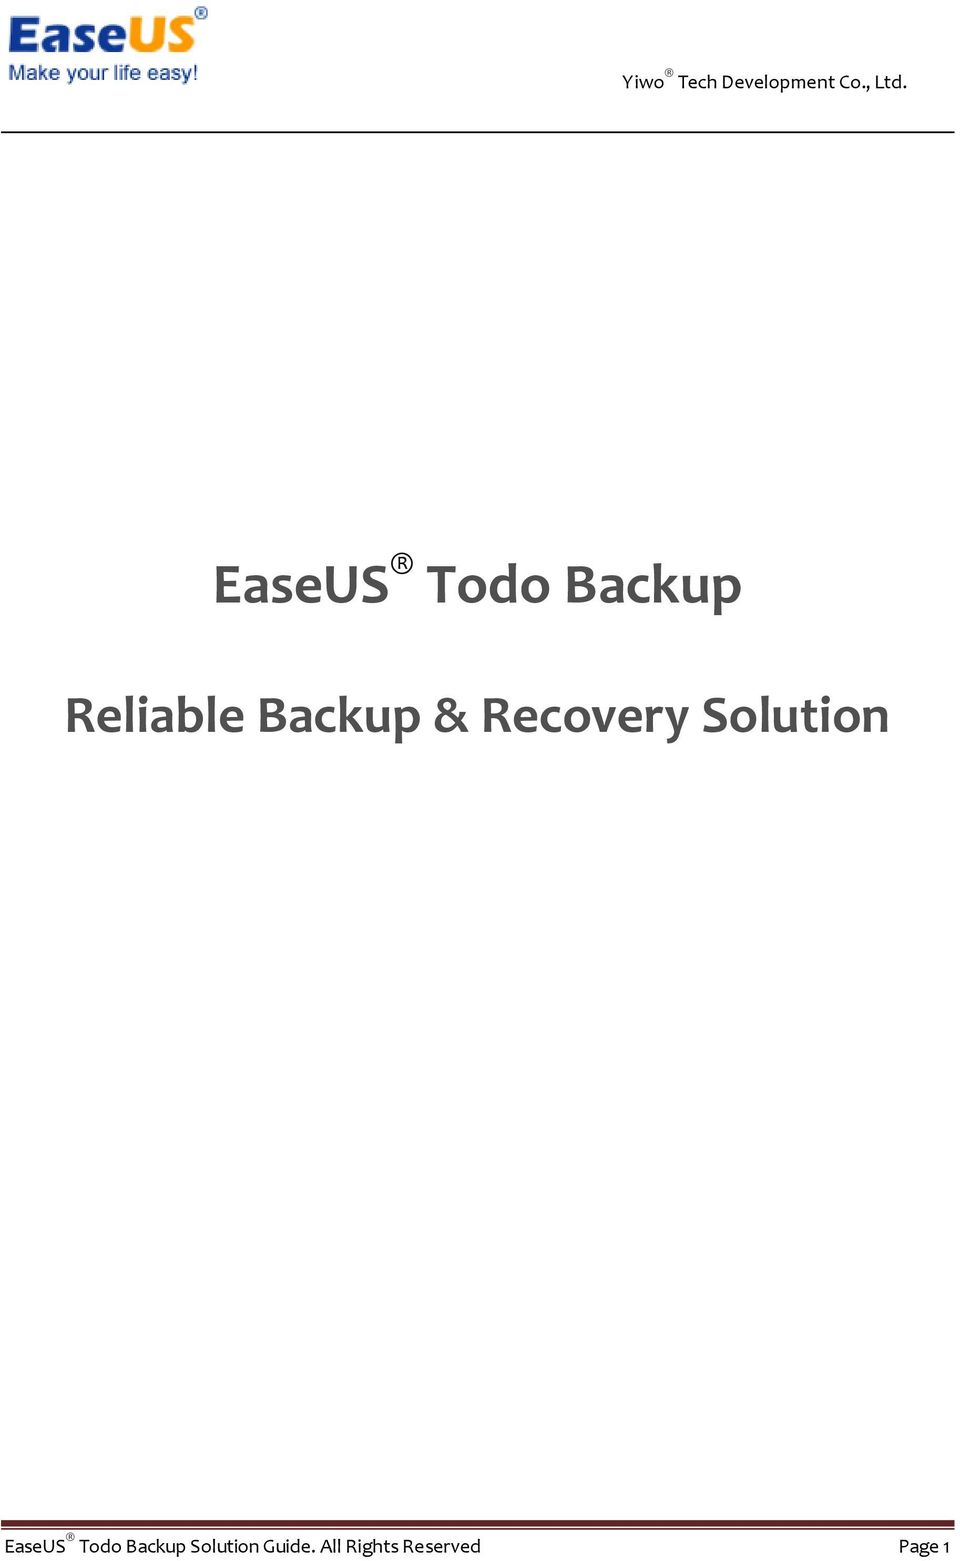 EaseUS Todo Backup Solution